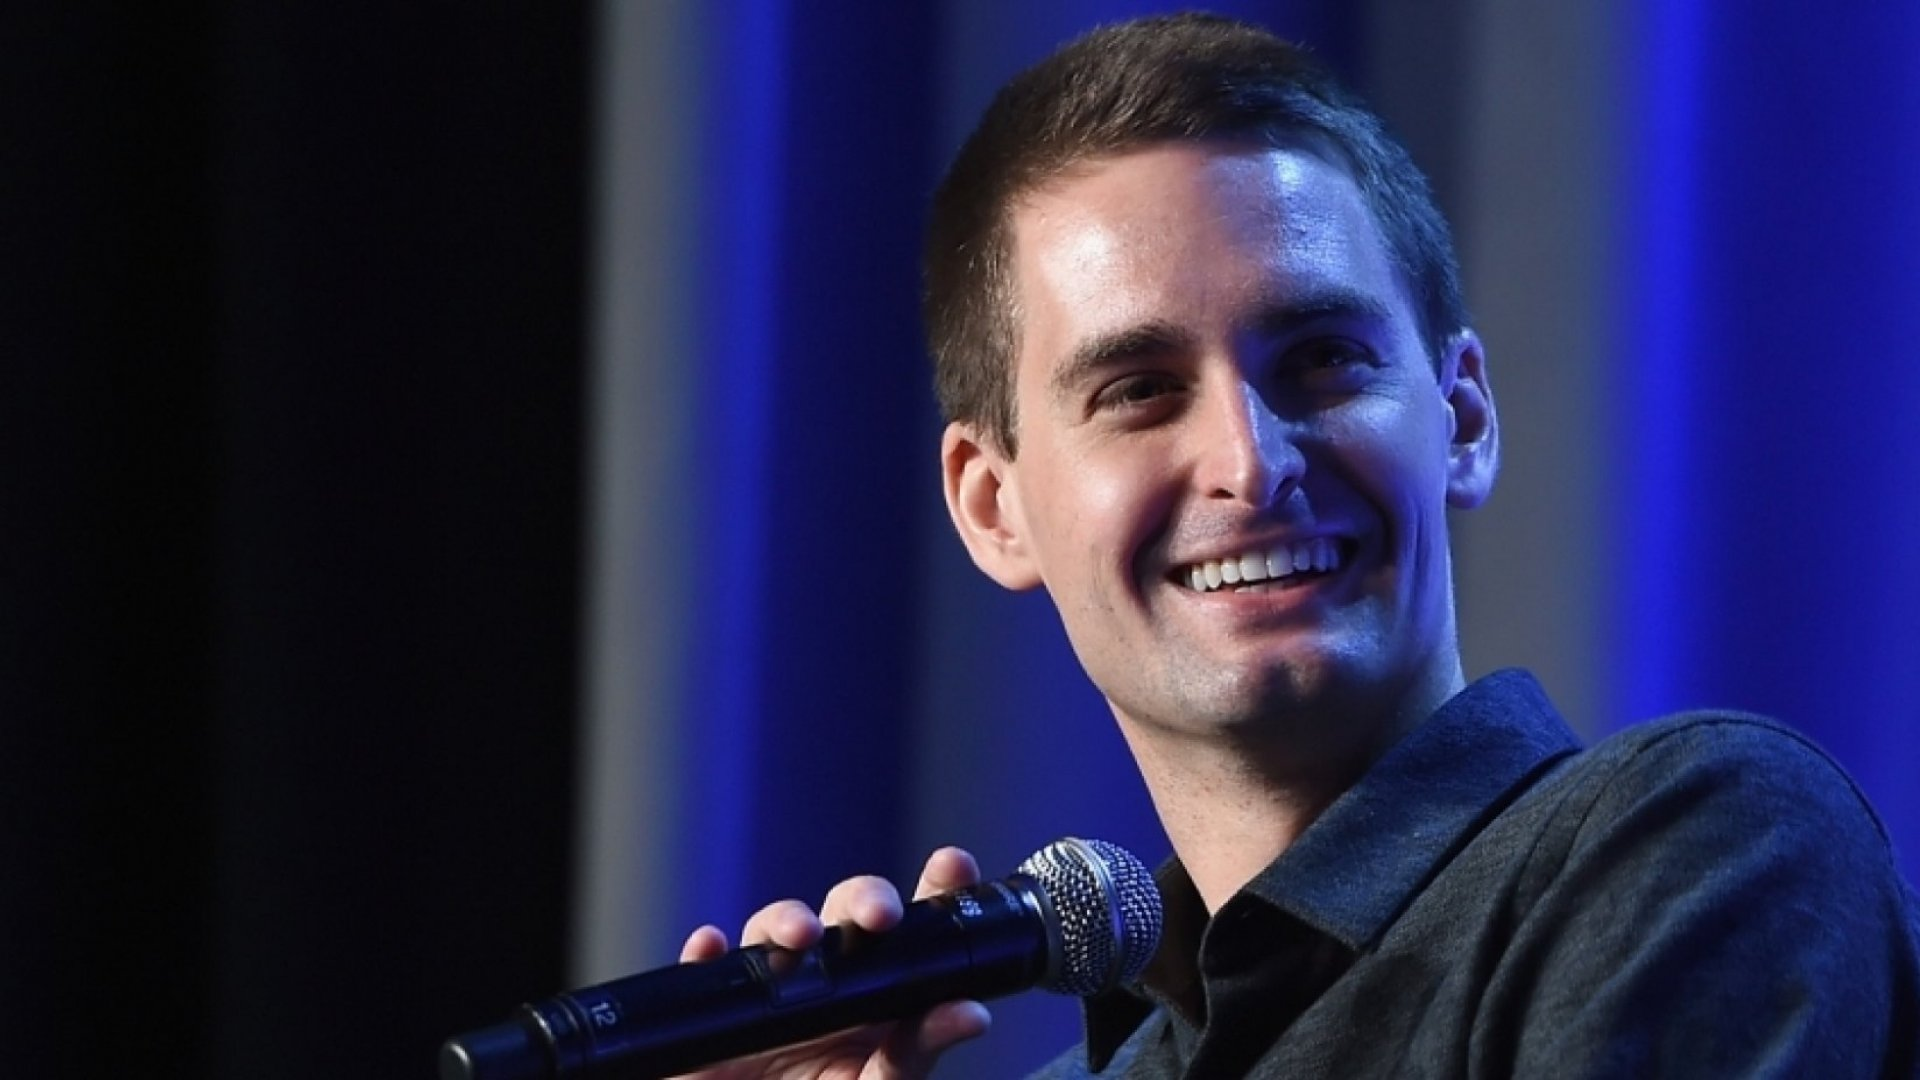 Snapchat Founder Evan Spiegel Made $504 Million in 2017--Over 3 Times as Much as Elon Musk